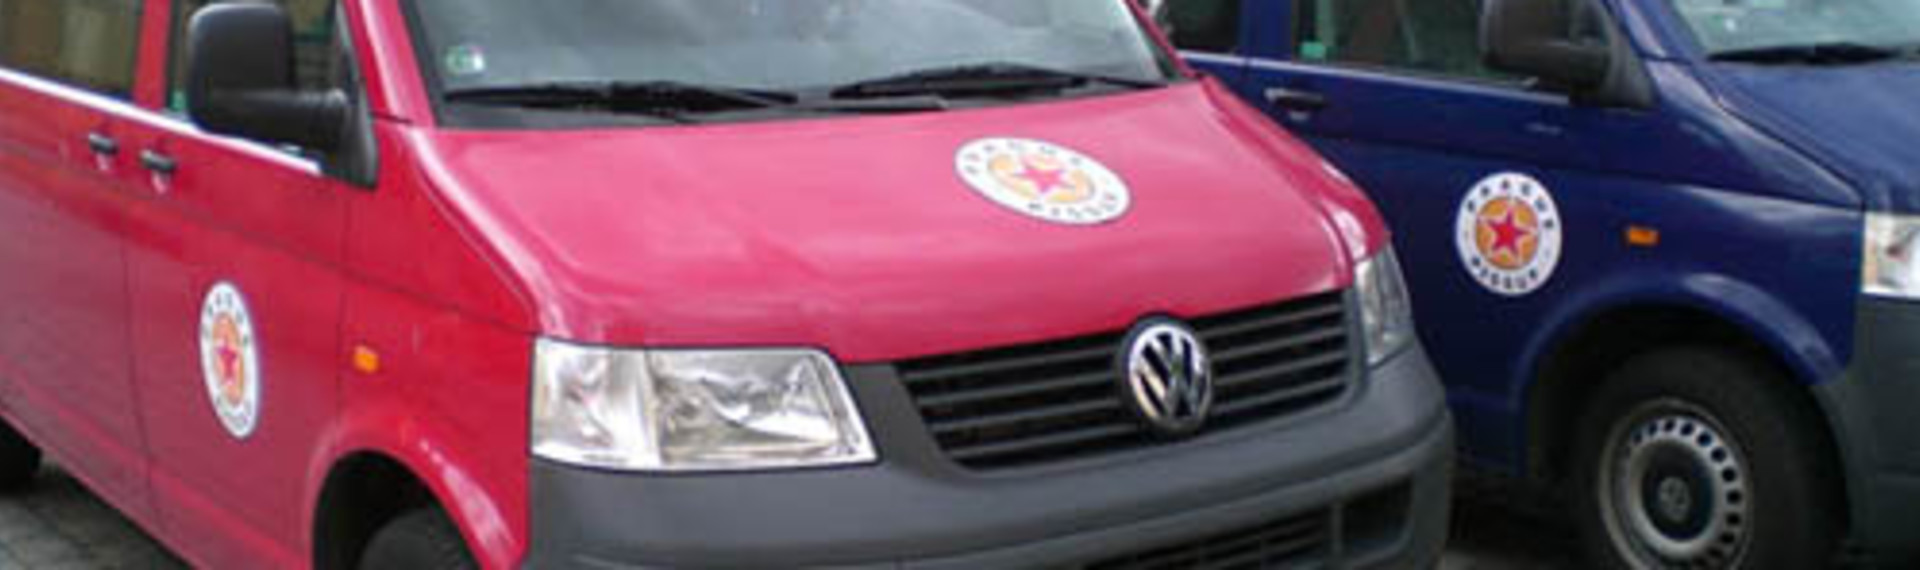 Wroclaw Airport Transfer image